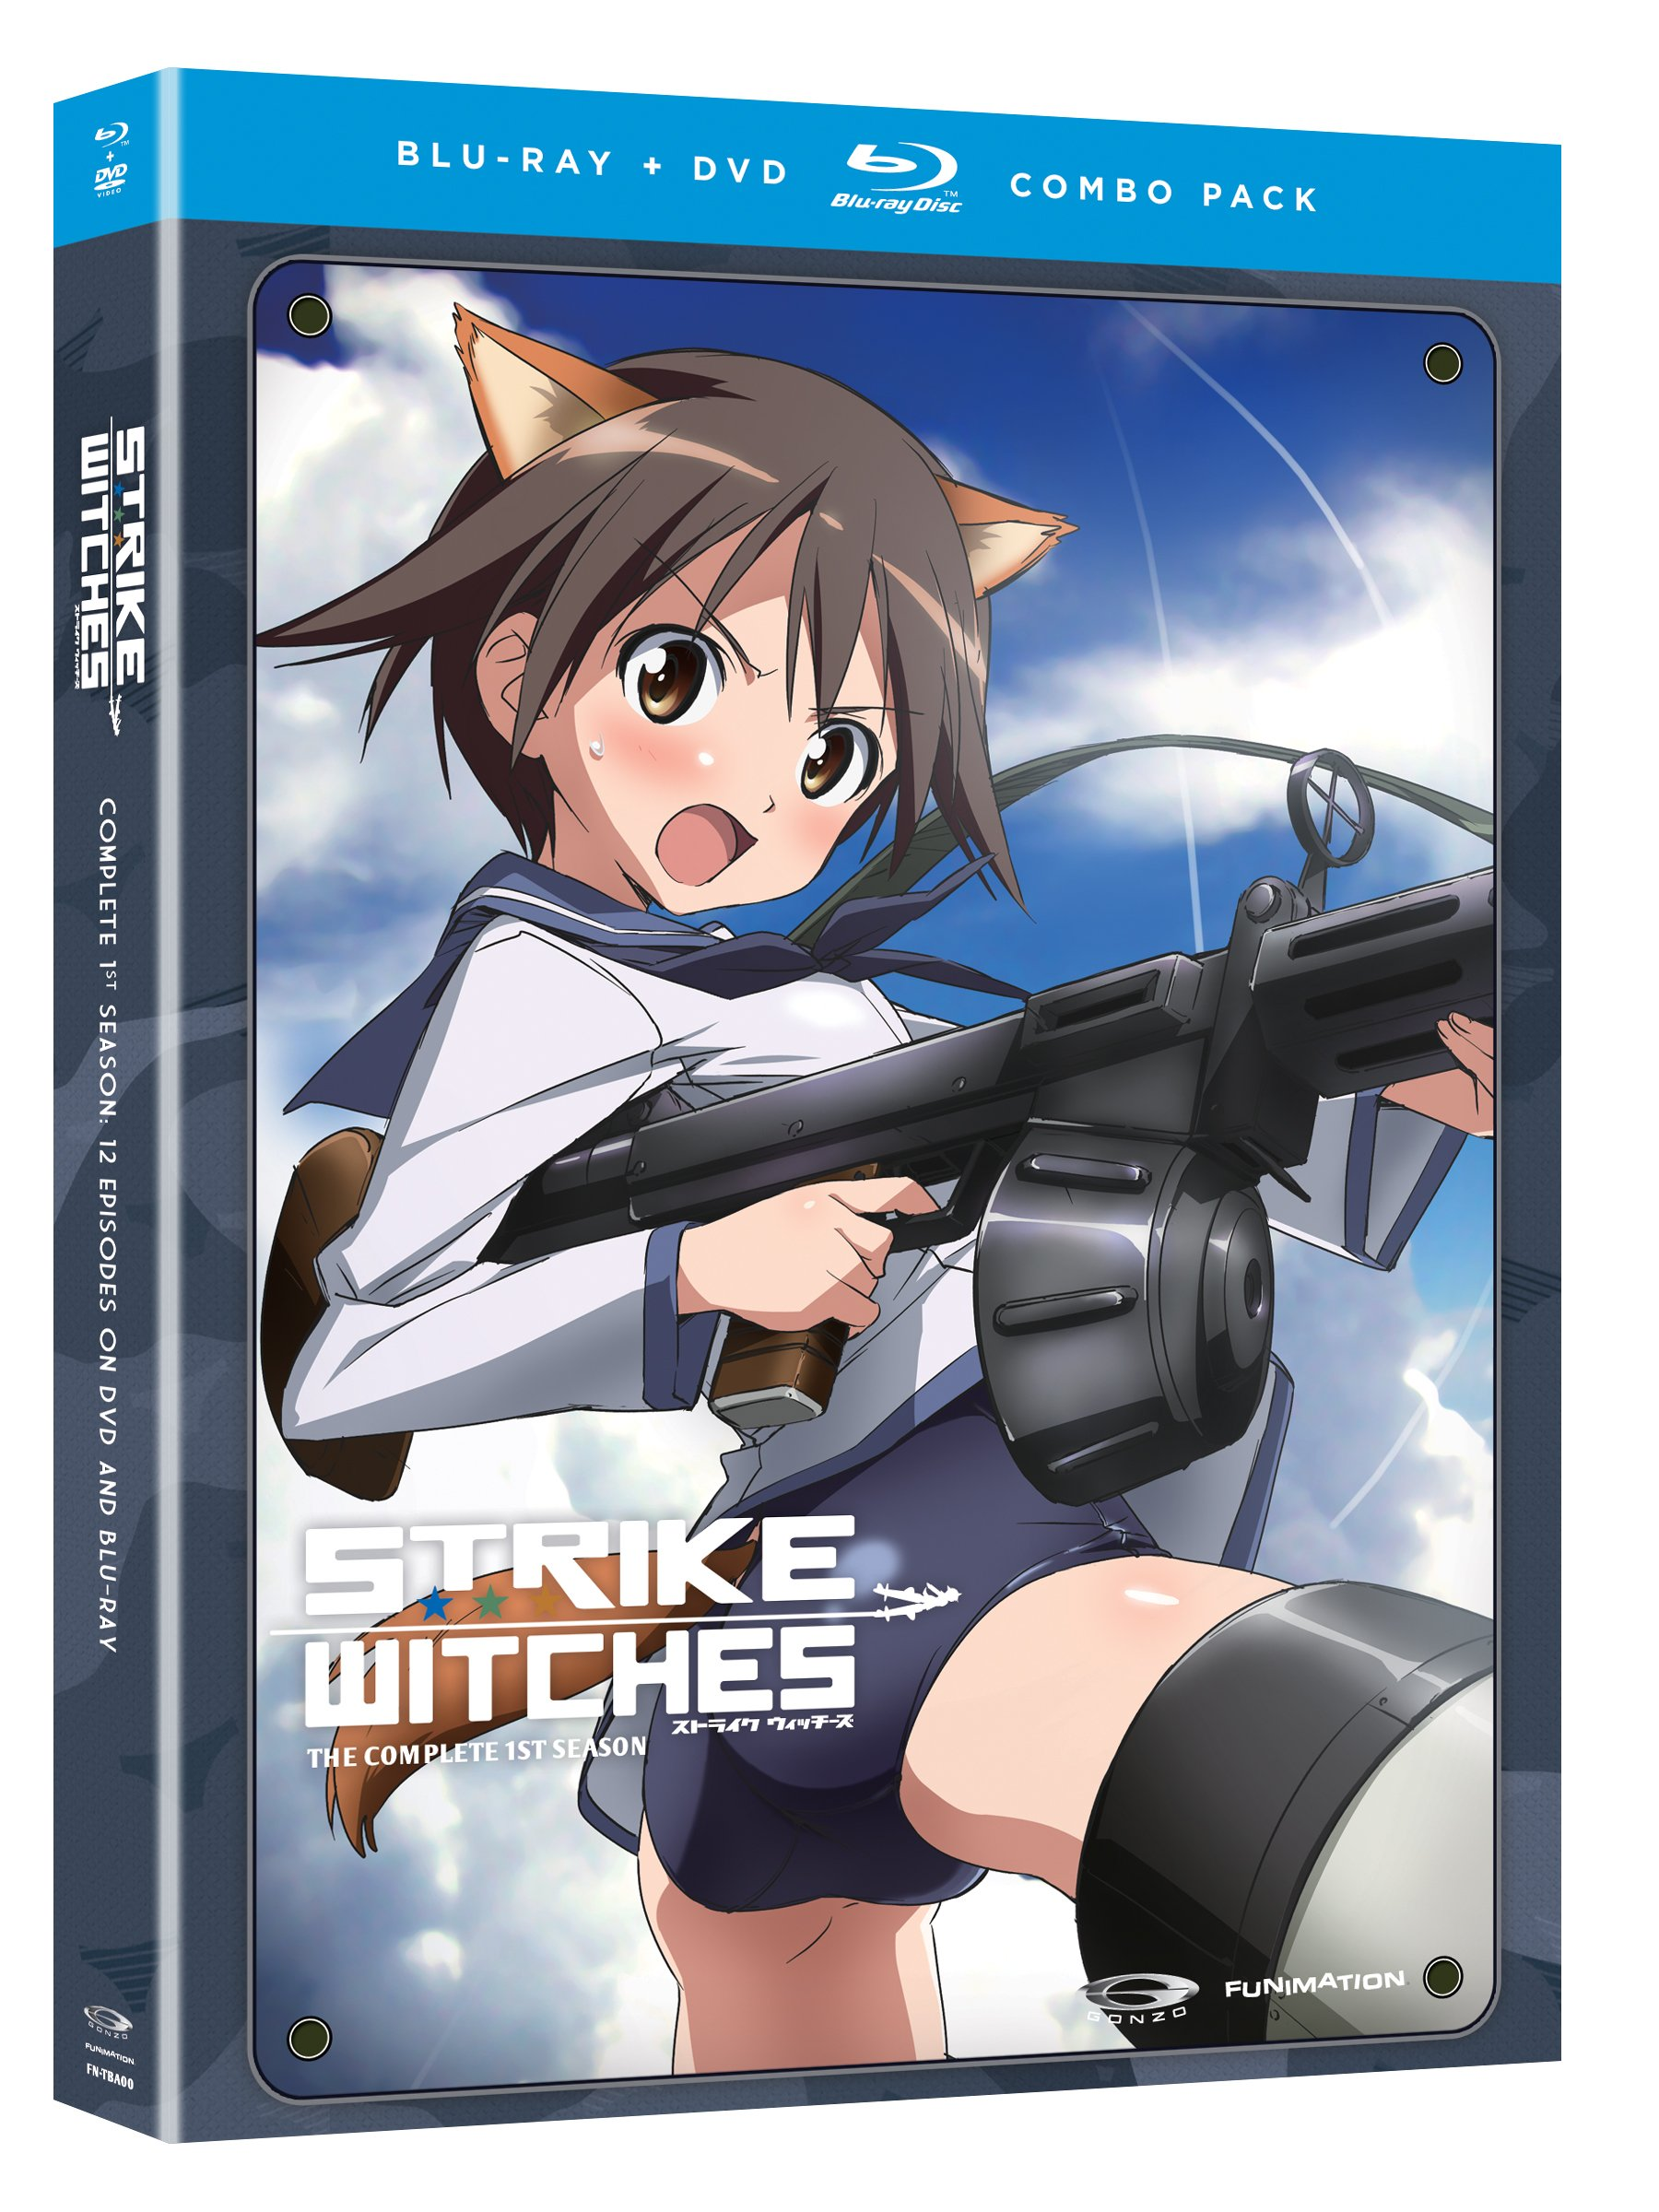 Strike witches season 1 collection blu ray disc asianblurayguide com